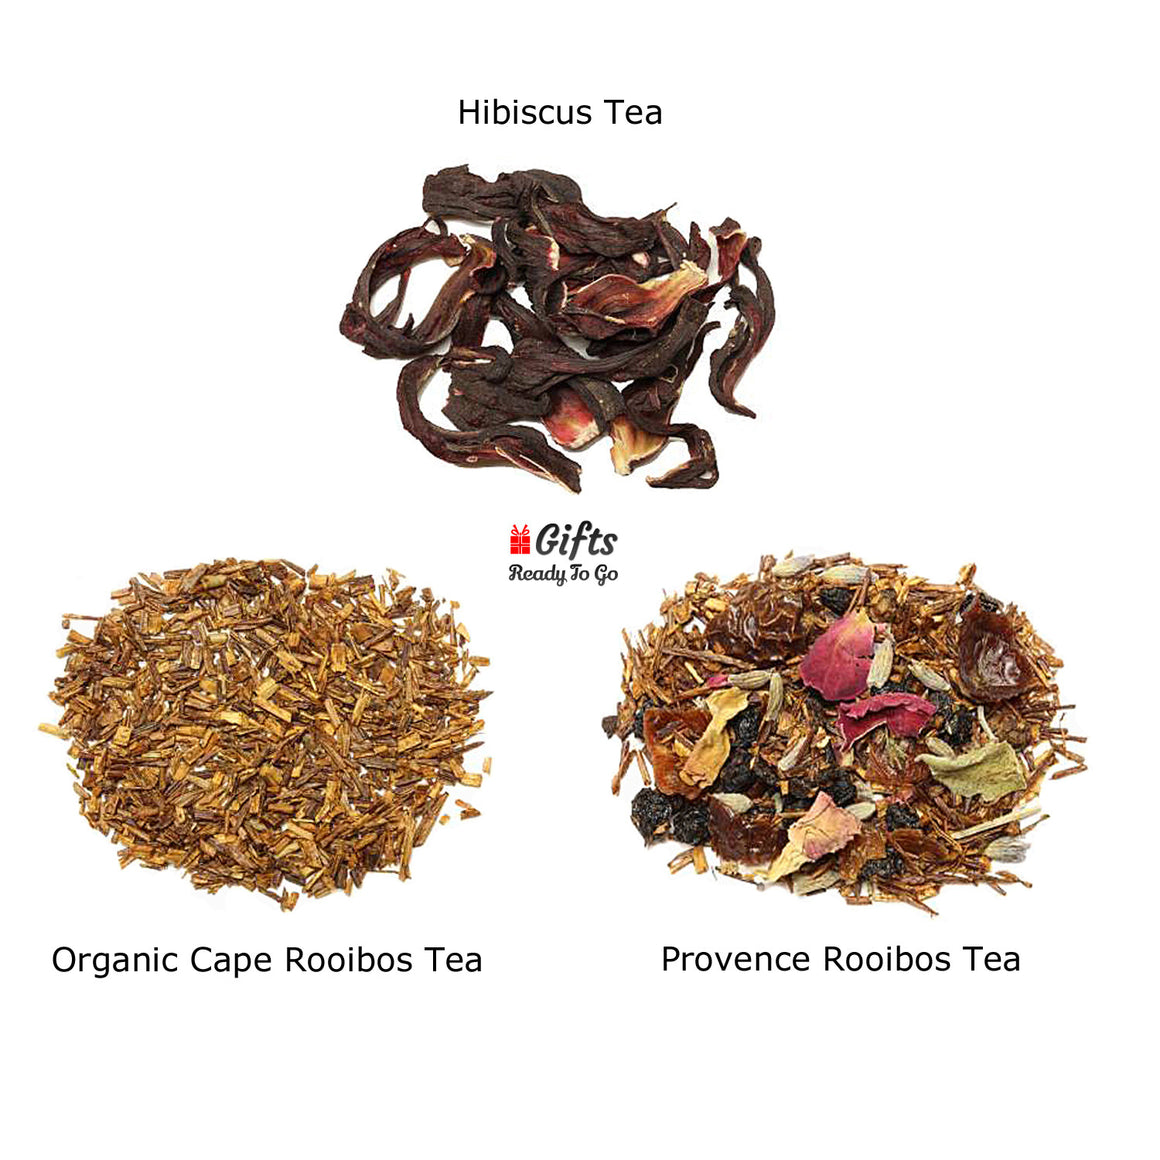 Gifts Ready To Go Premium Hibiscus & Rooibos Tea Gift Set